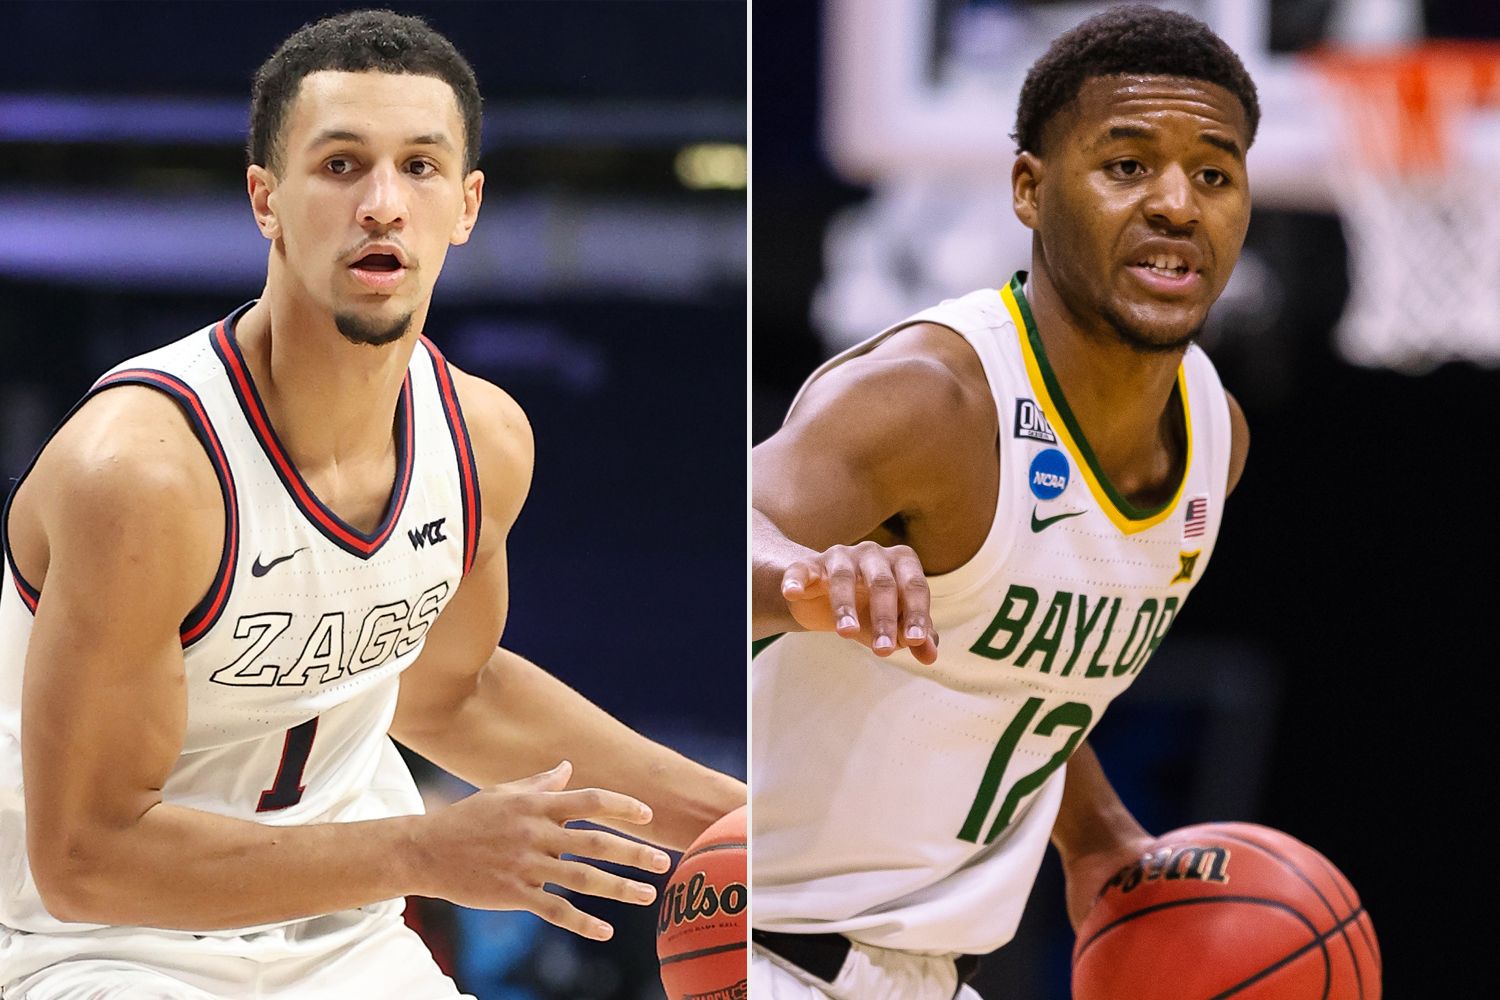 Jalen Suggs #1 of the Gonzaga Bulldogs, Jared Butler #12 of the Baylor Bears